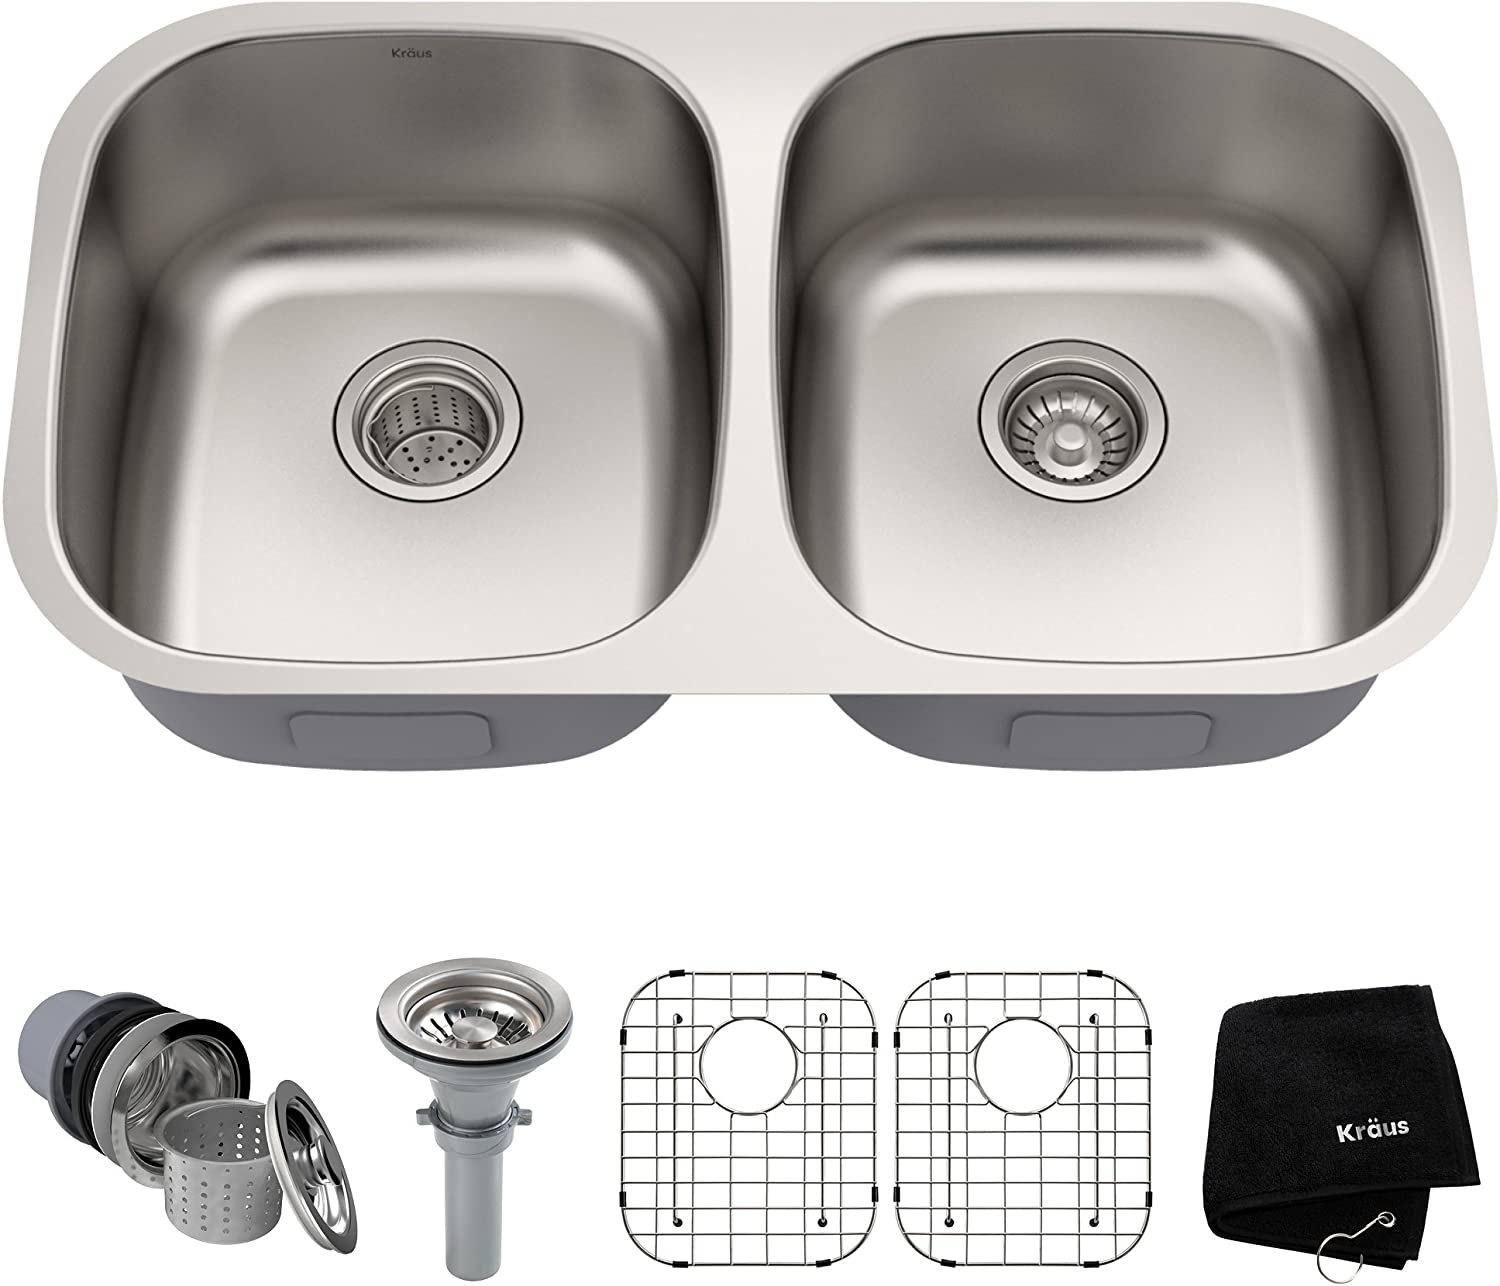 16 Gauge Stainless Steel Kitchen Sink Home Architec Ideas